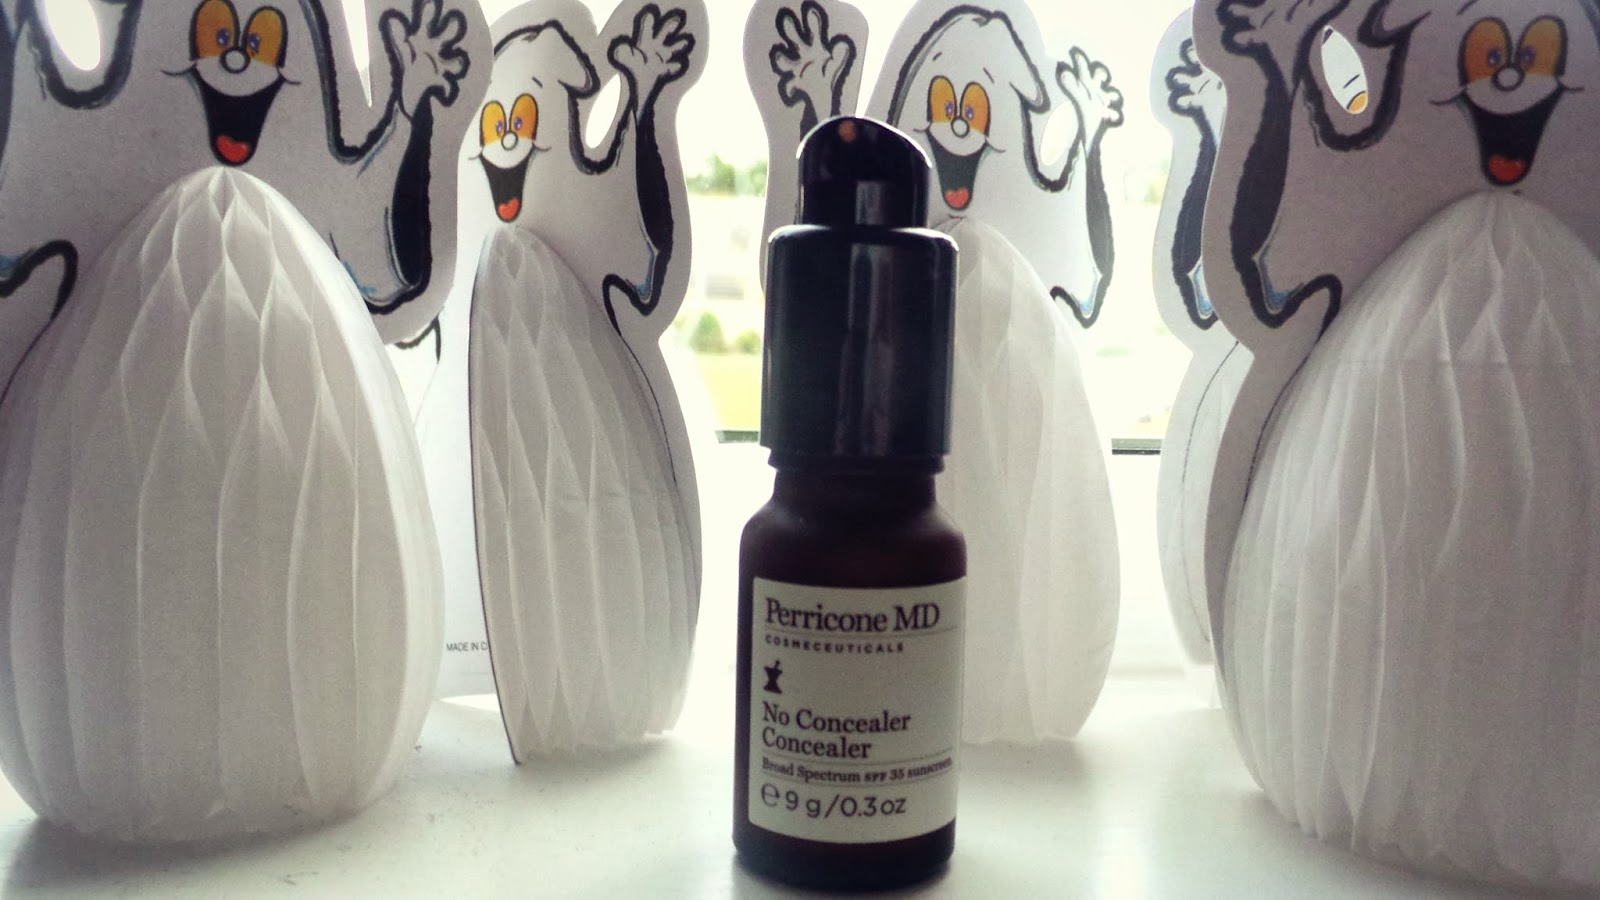 Image of Perricone MD No Concealer Concealer